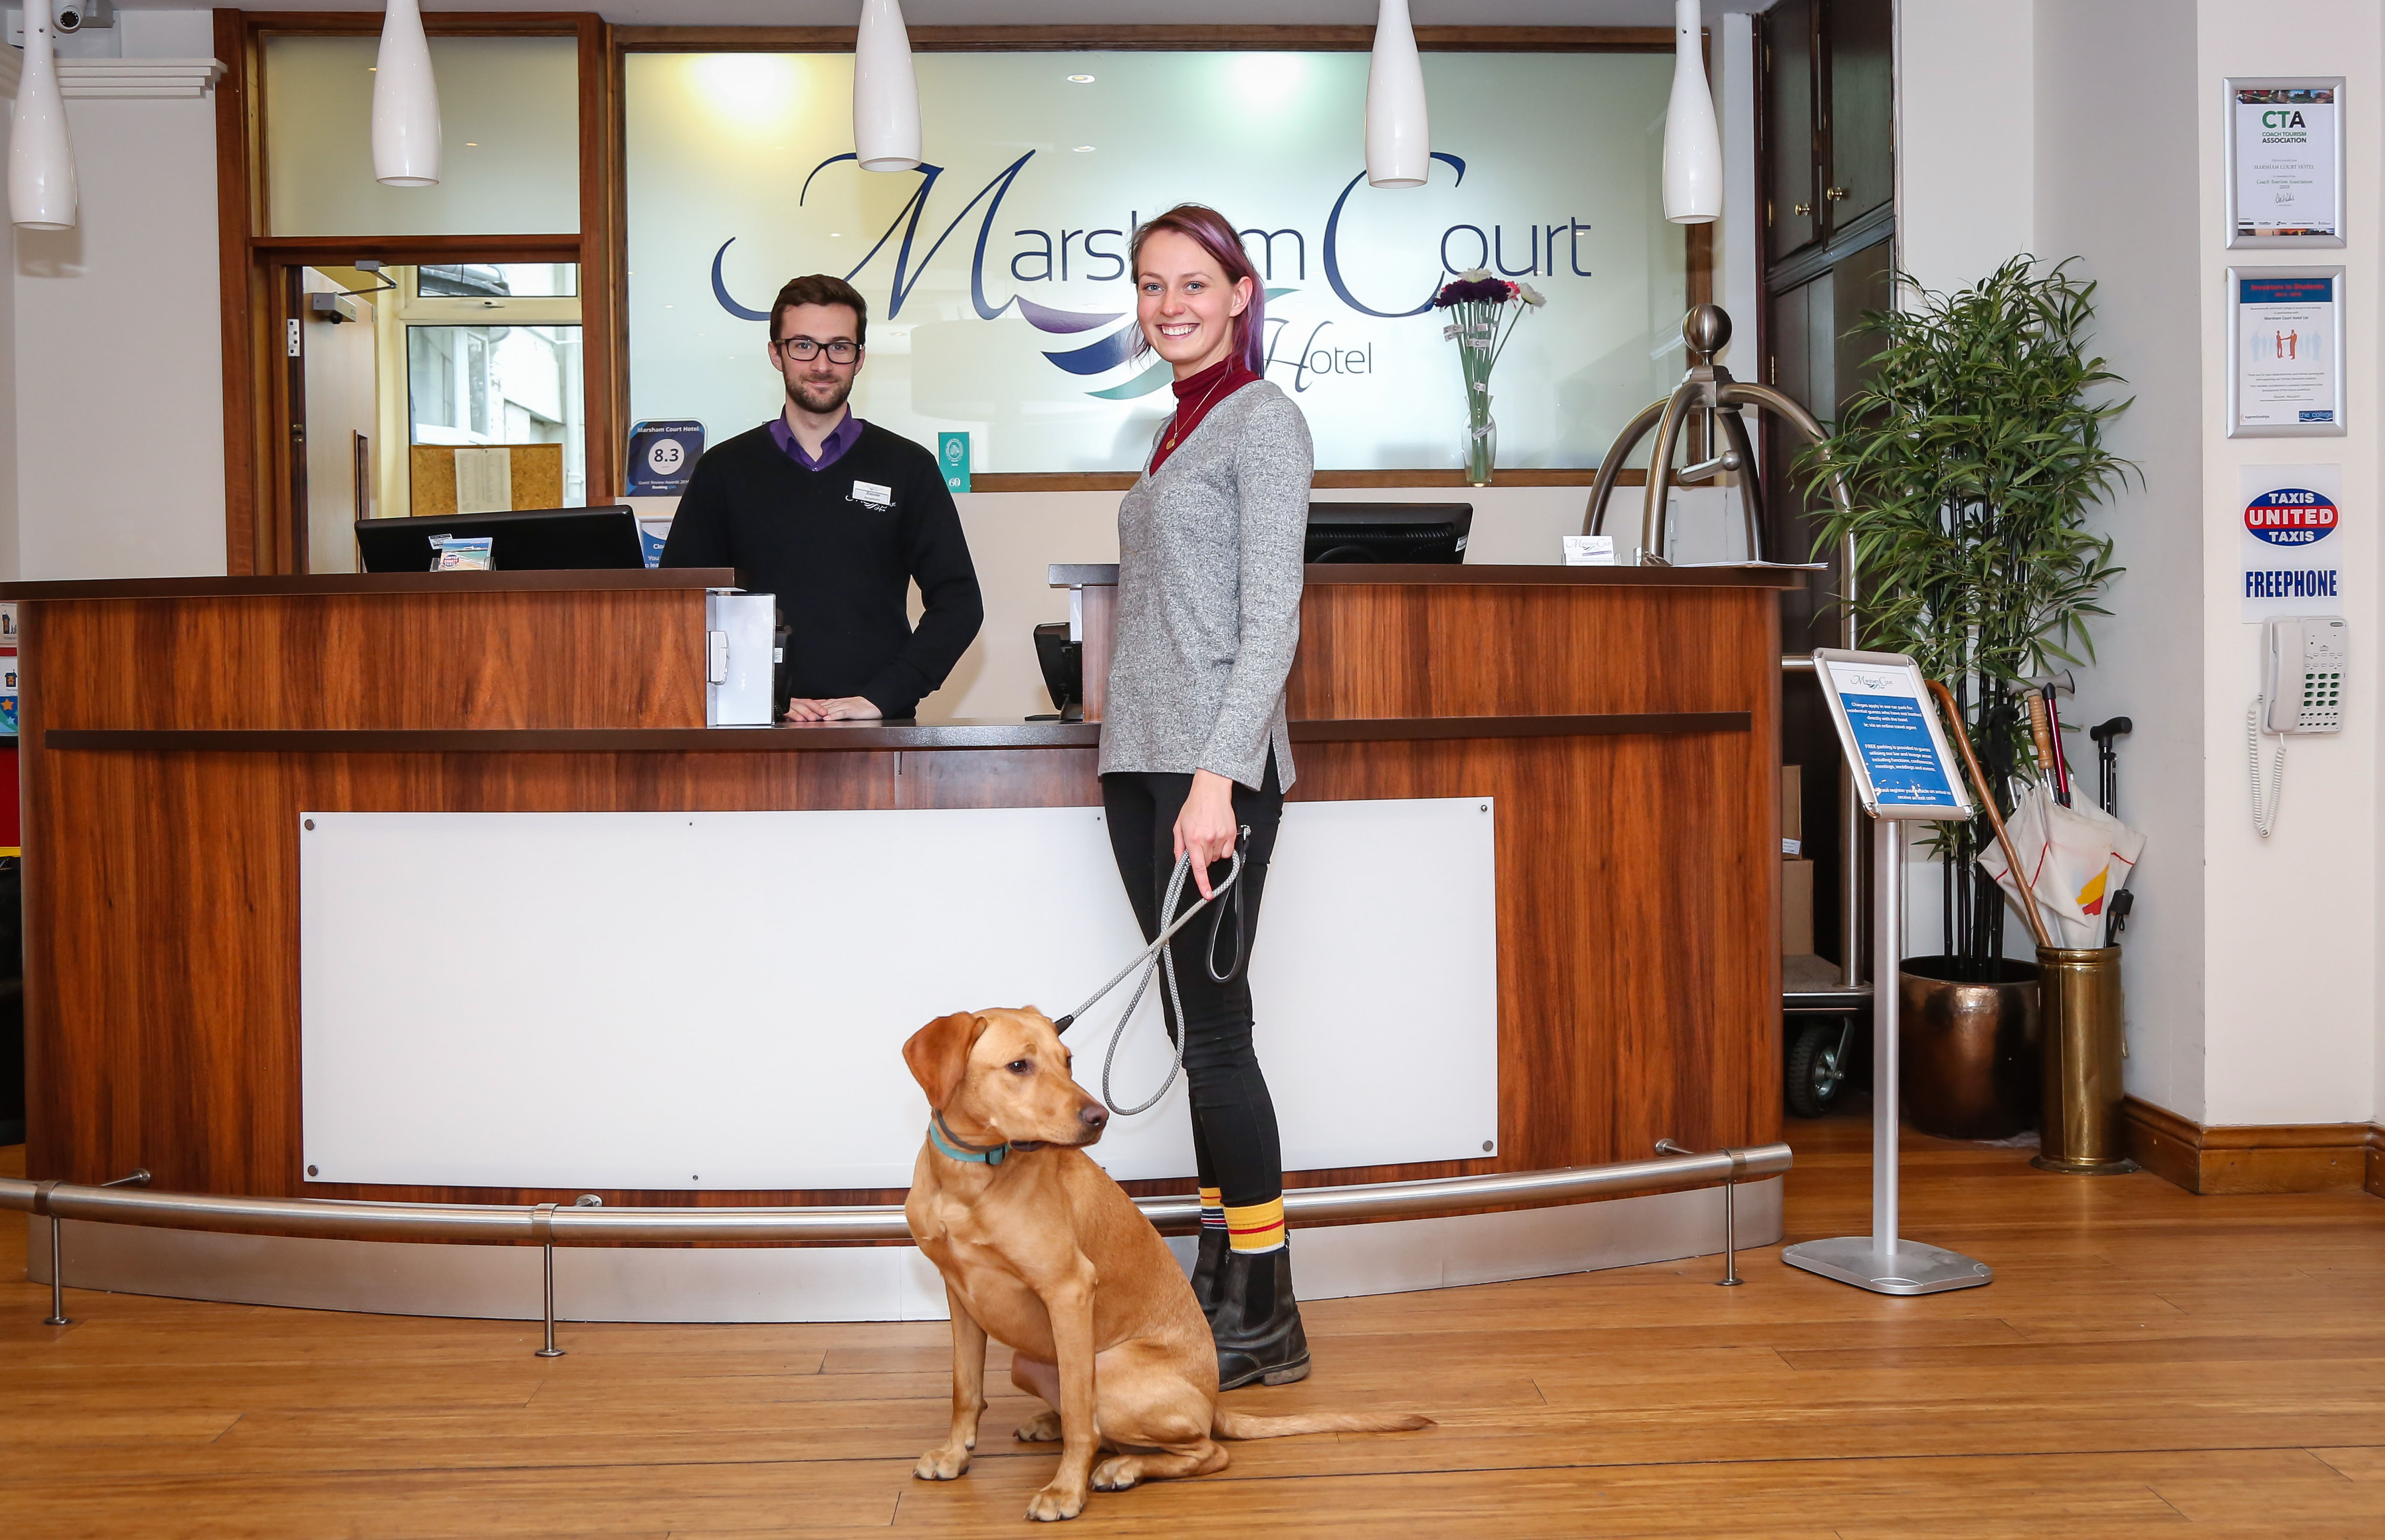 Dog-Friendly, Dog friendly hotel